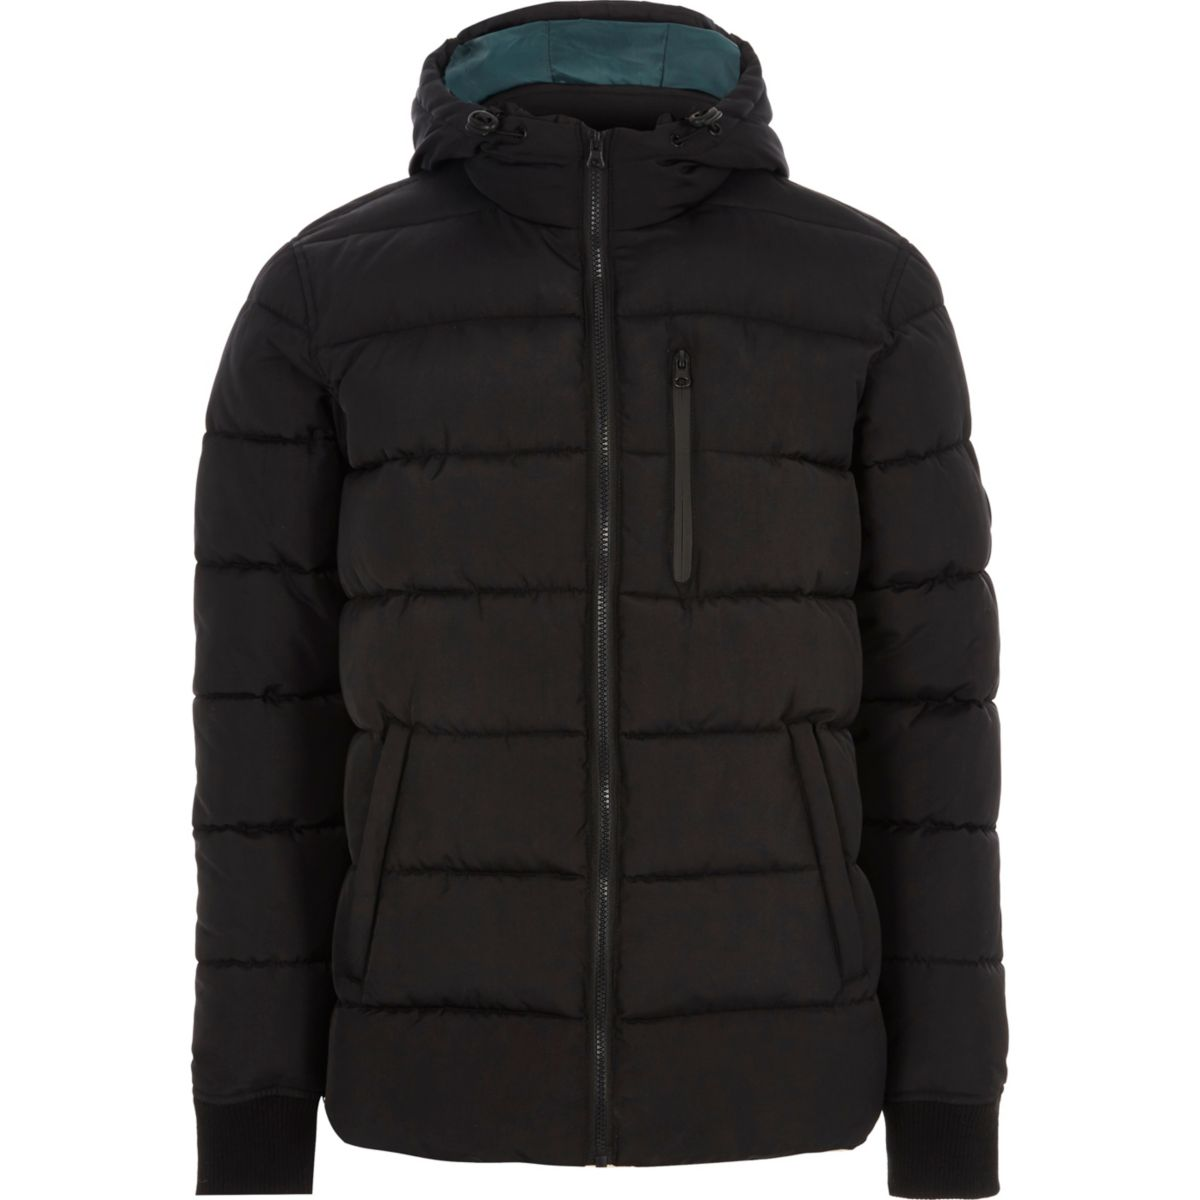 Find men's puffer jackets sale at ShopStyle. Shop the latest collection of men's puffer jackets sale from the most popular stores - all in one place.